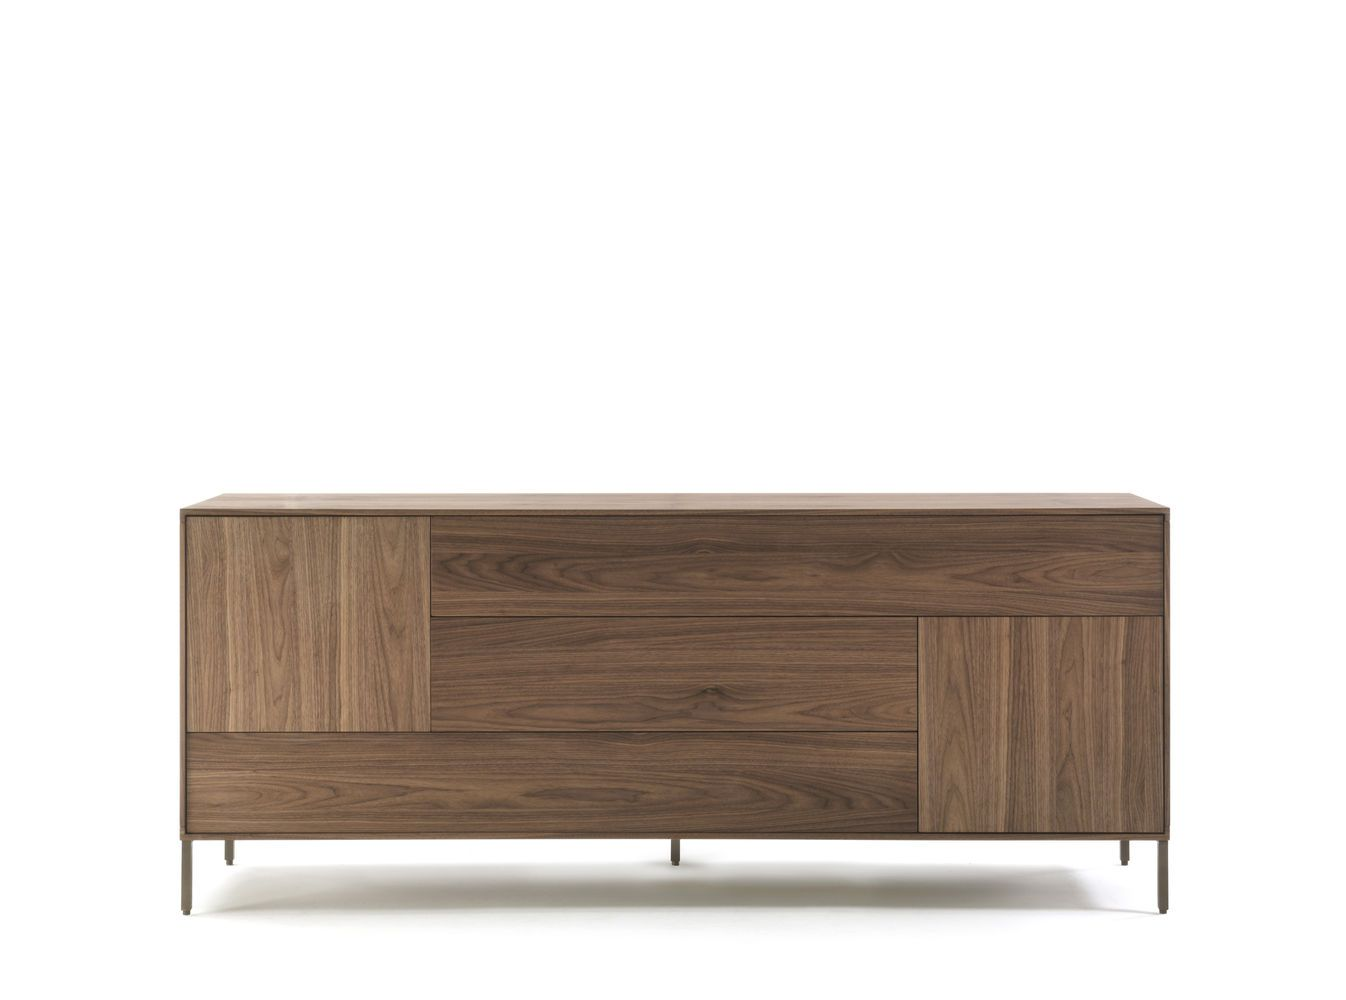 A sideboard made up of drawers and doors with wooden fronts and veneers running horizontally for the drawers and vertically for the doors. A combination offering a powerful aesthetic effect and a sense of movement and dynamism.